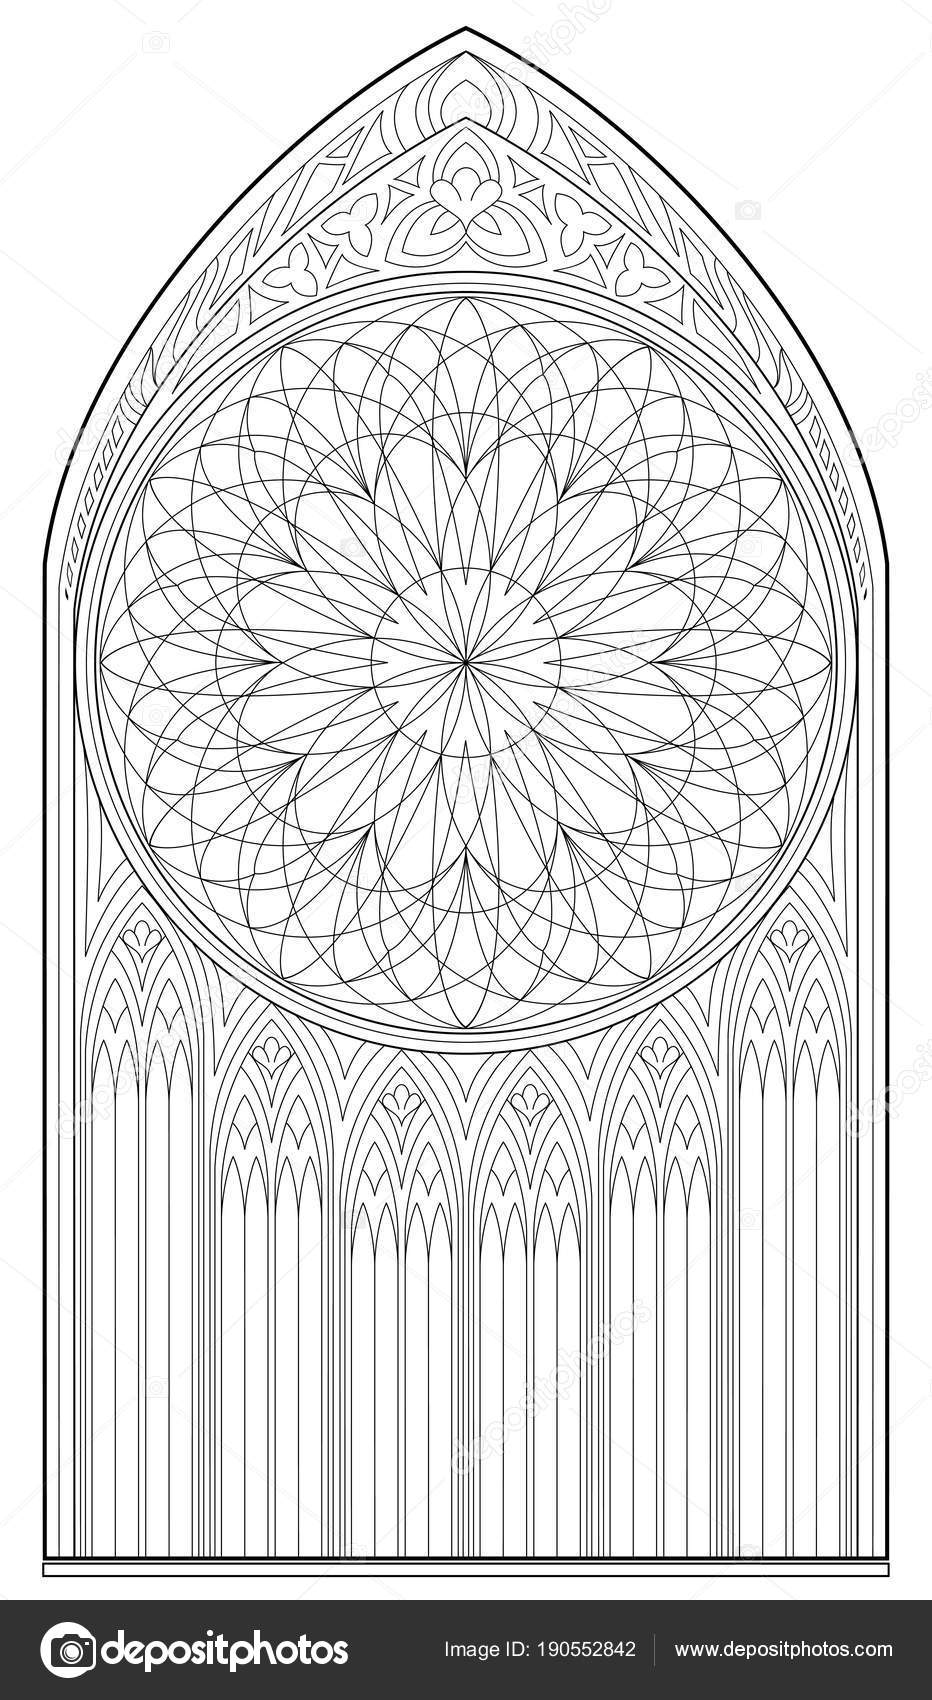 Drawing Of Medieval Gothic Window With Stained Glass And Rose Worksheet For Children Adults Vector Image By Nataljacernecka